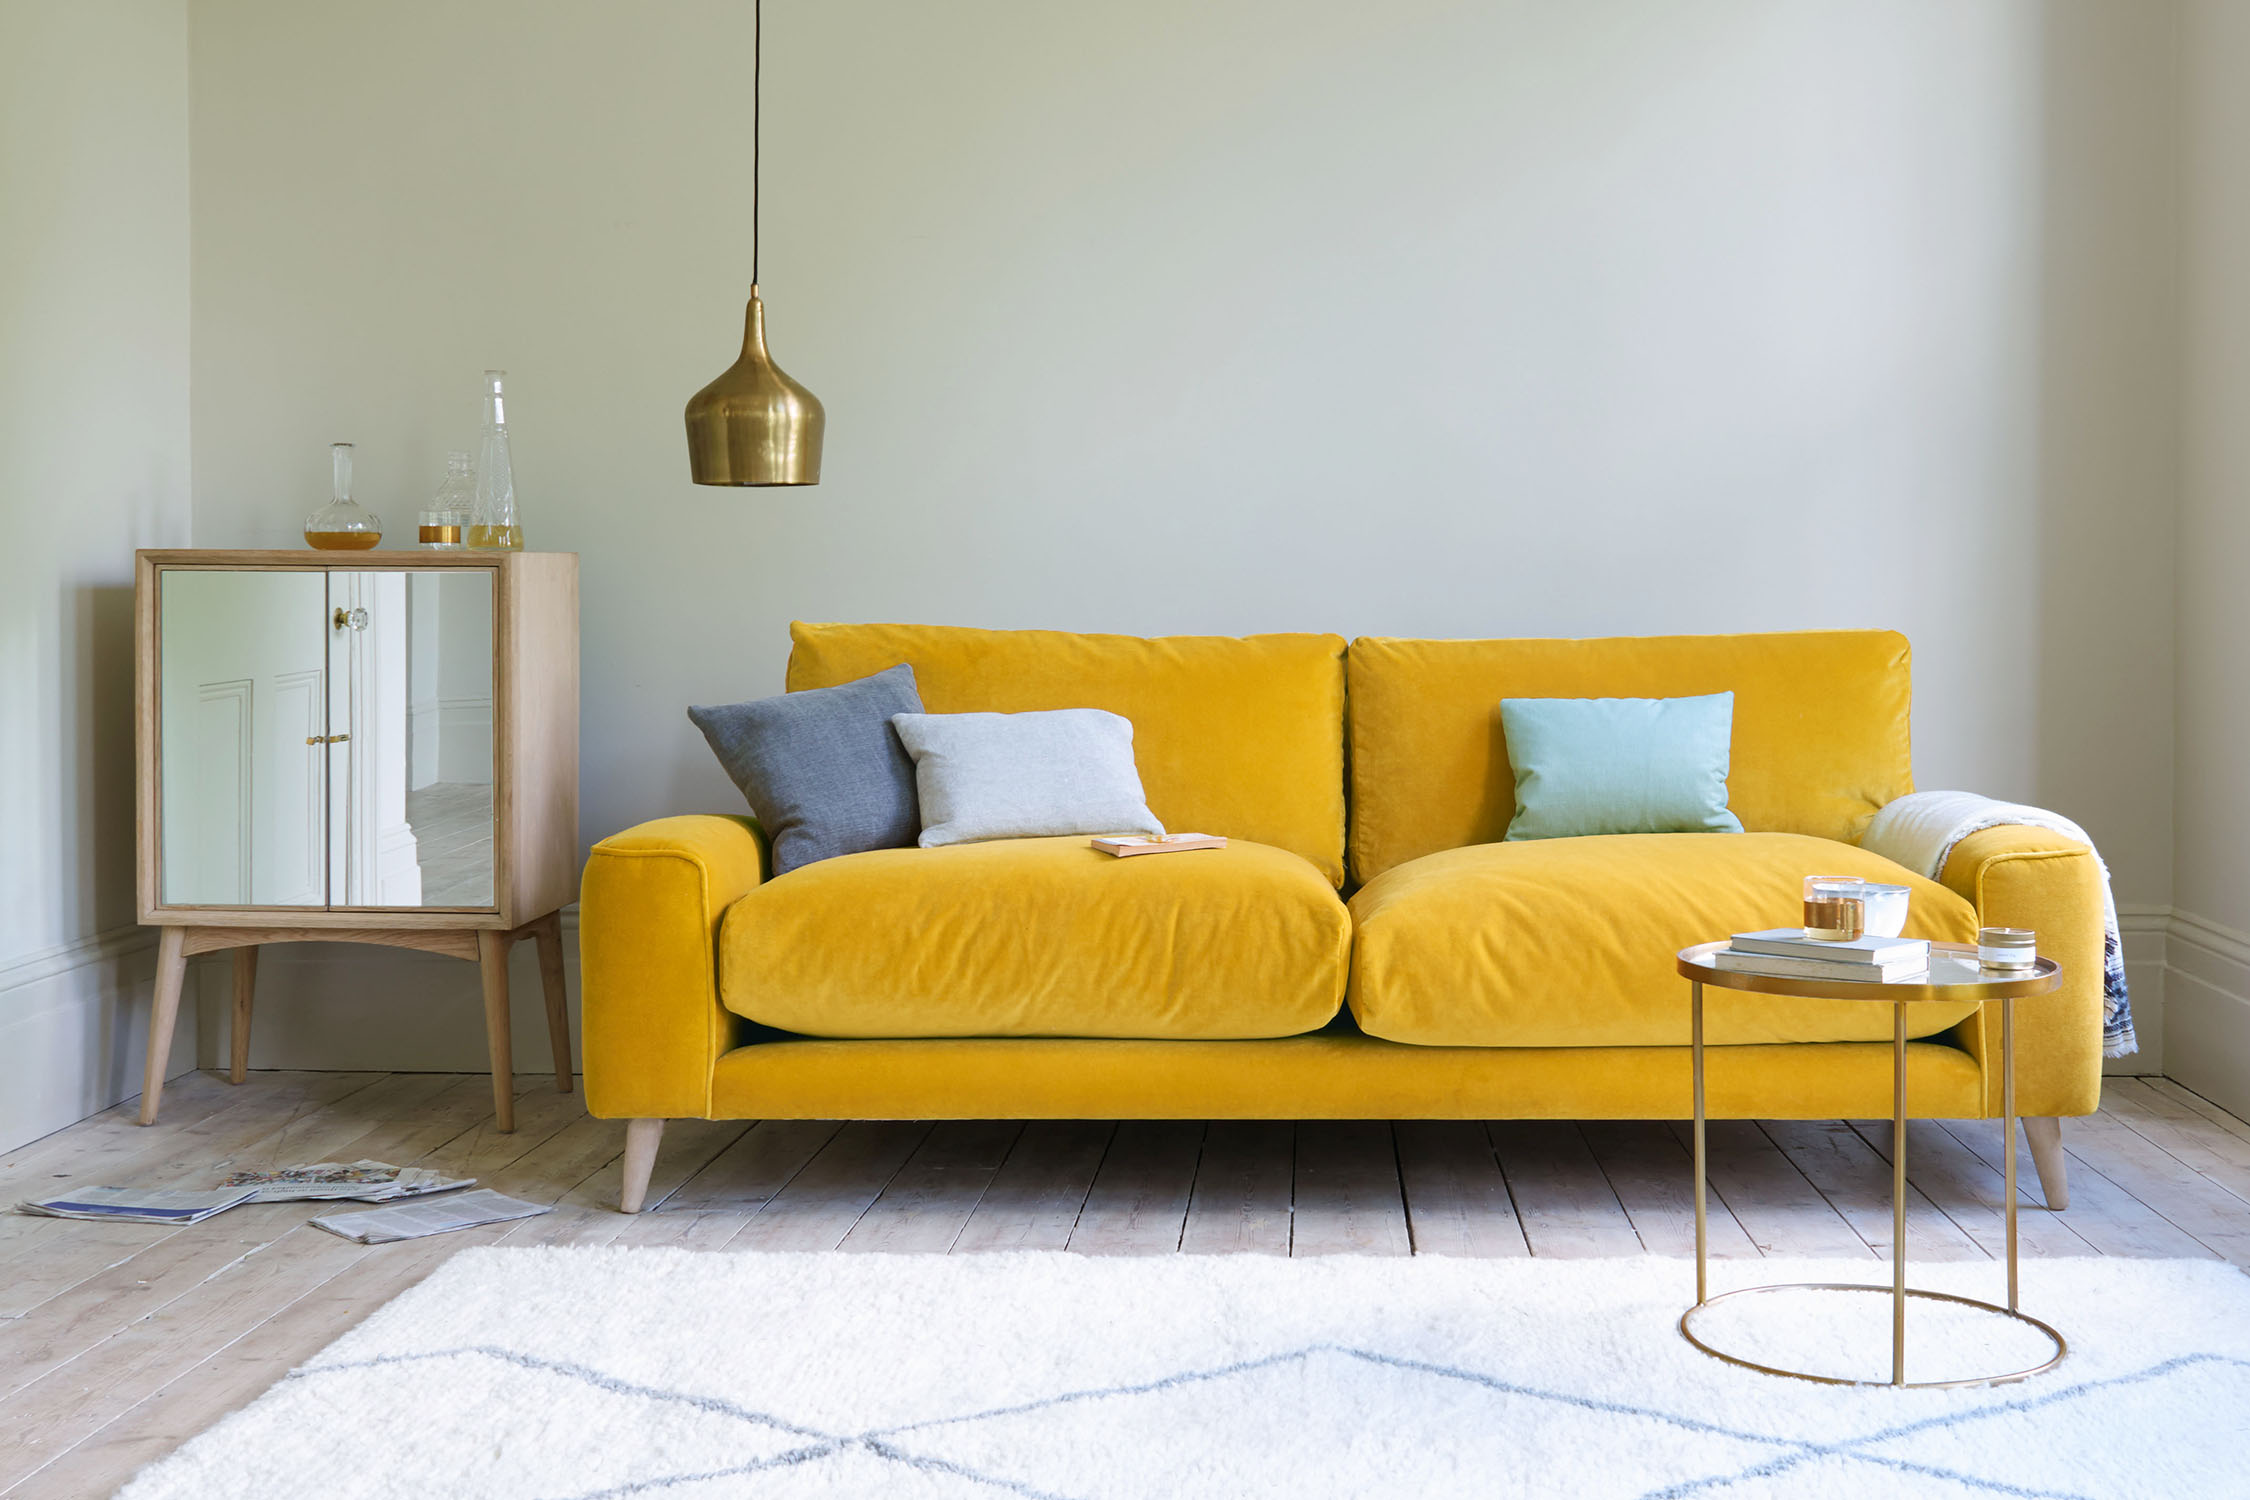 Habitat Sofa 2nd Hand 33 Colourful Sofas A Rainbow Review Of Aw18 Settees Home The